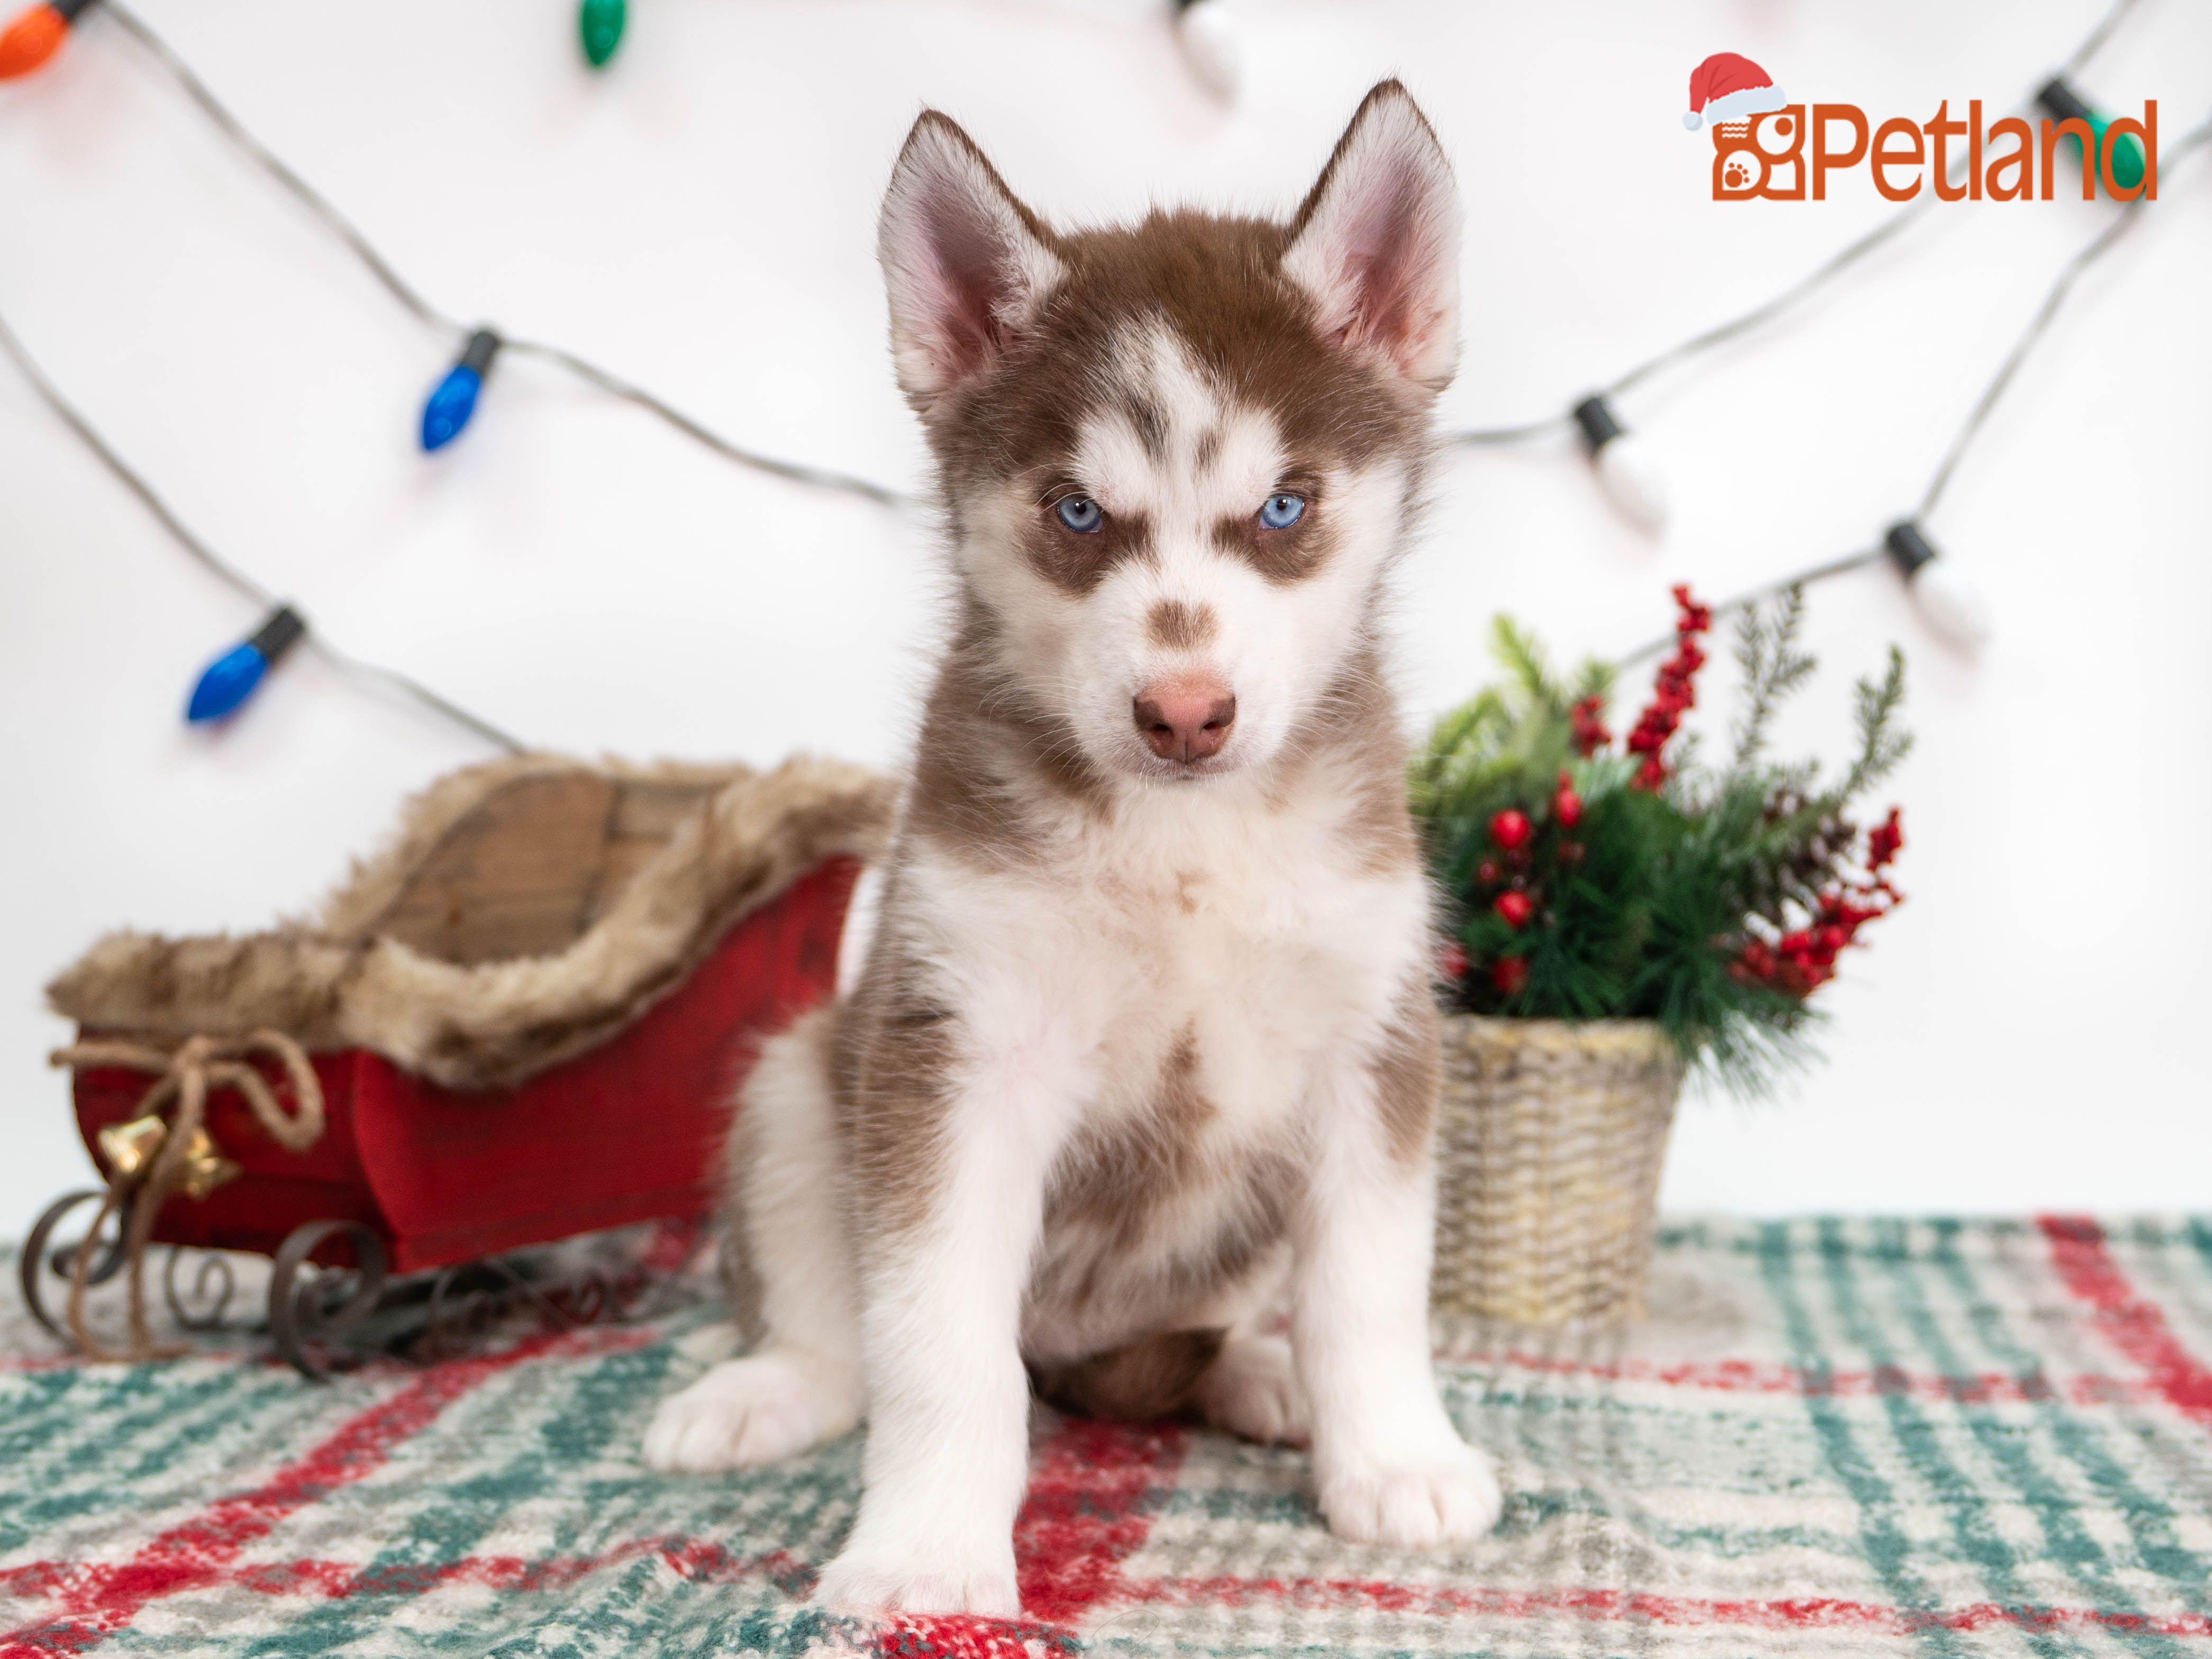 Puppies For Sale Puppy friends, Husky puppies for sale